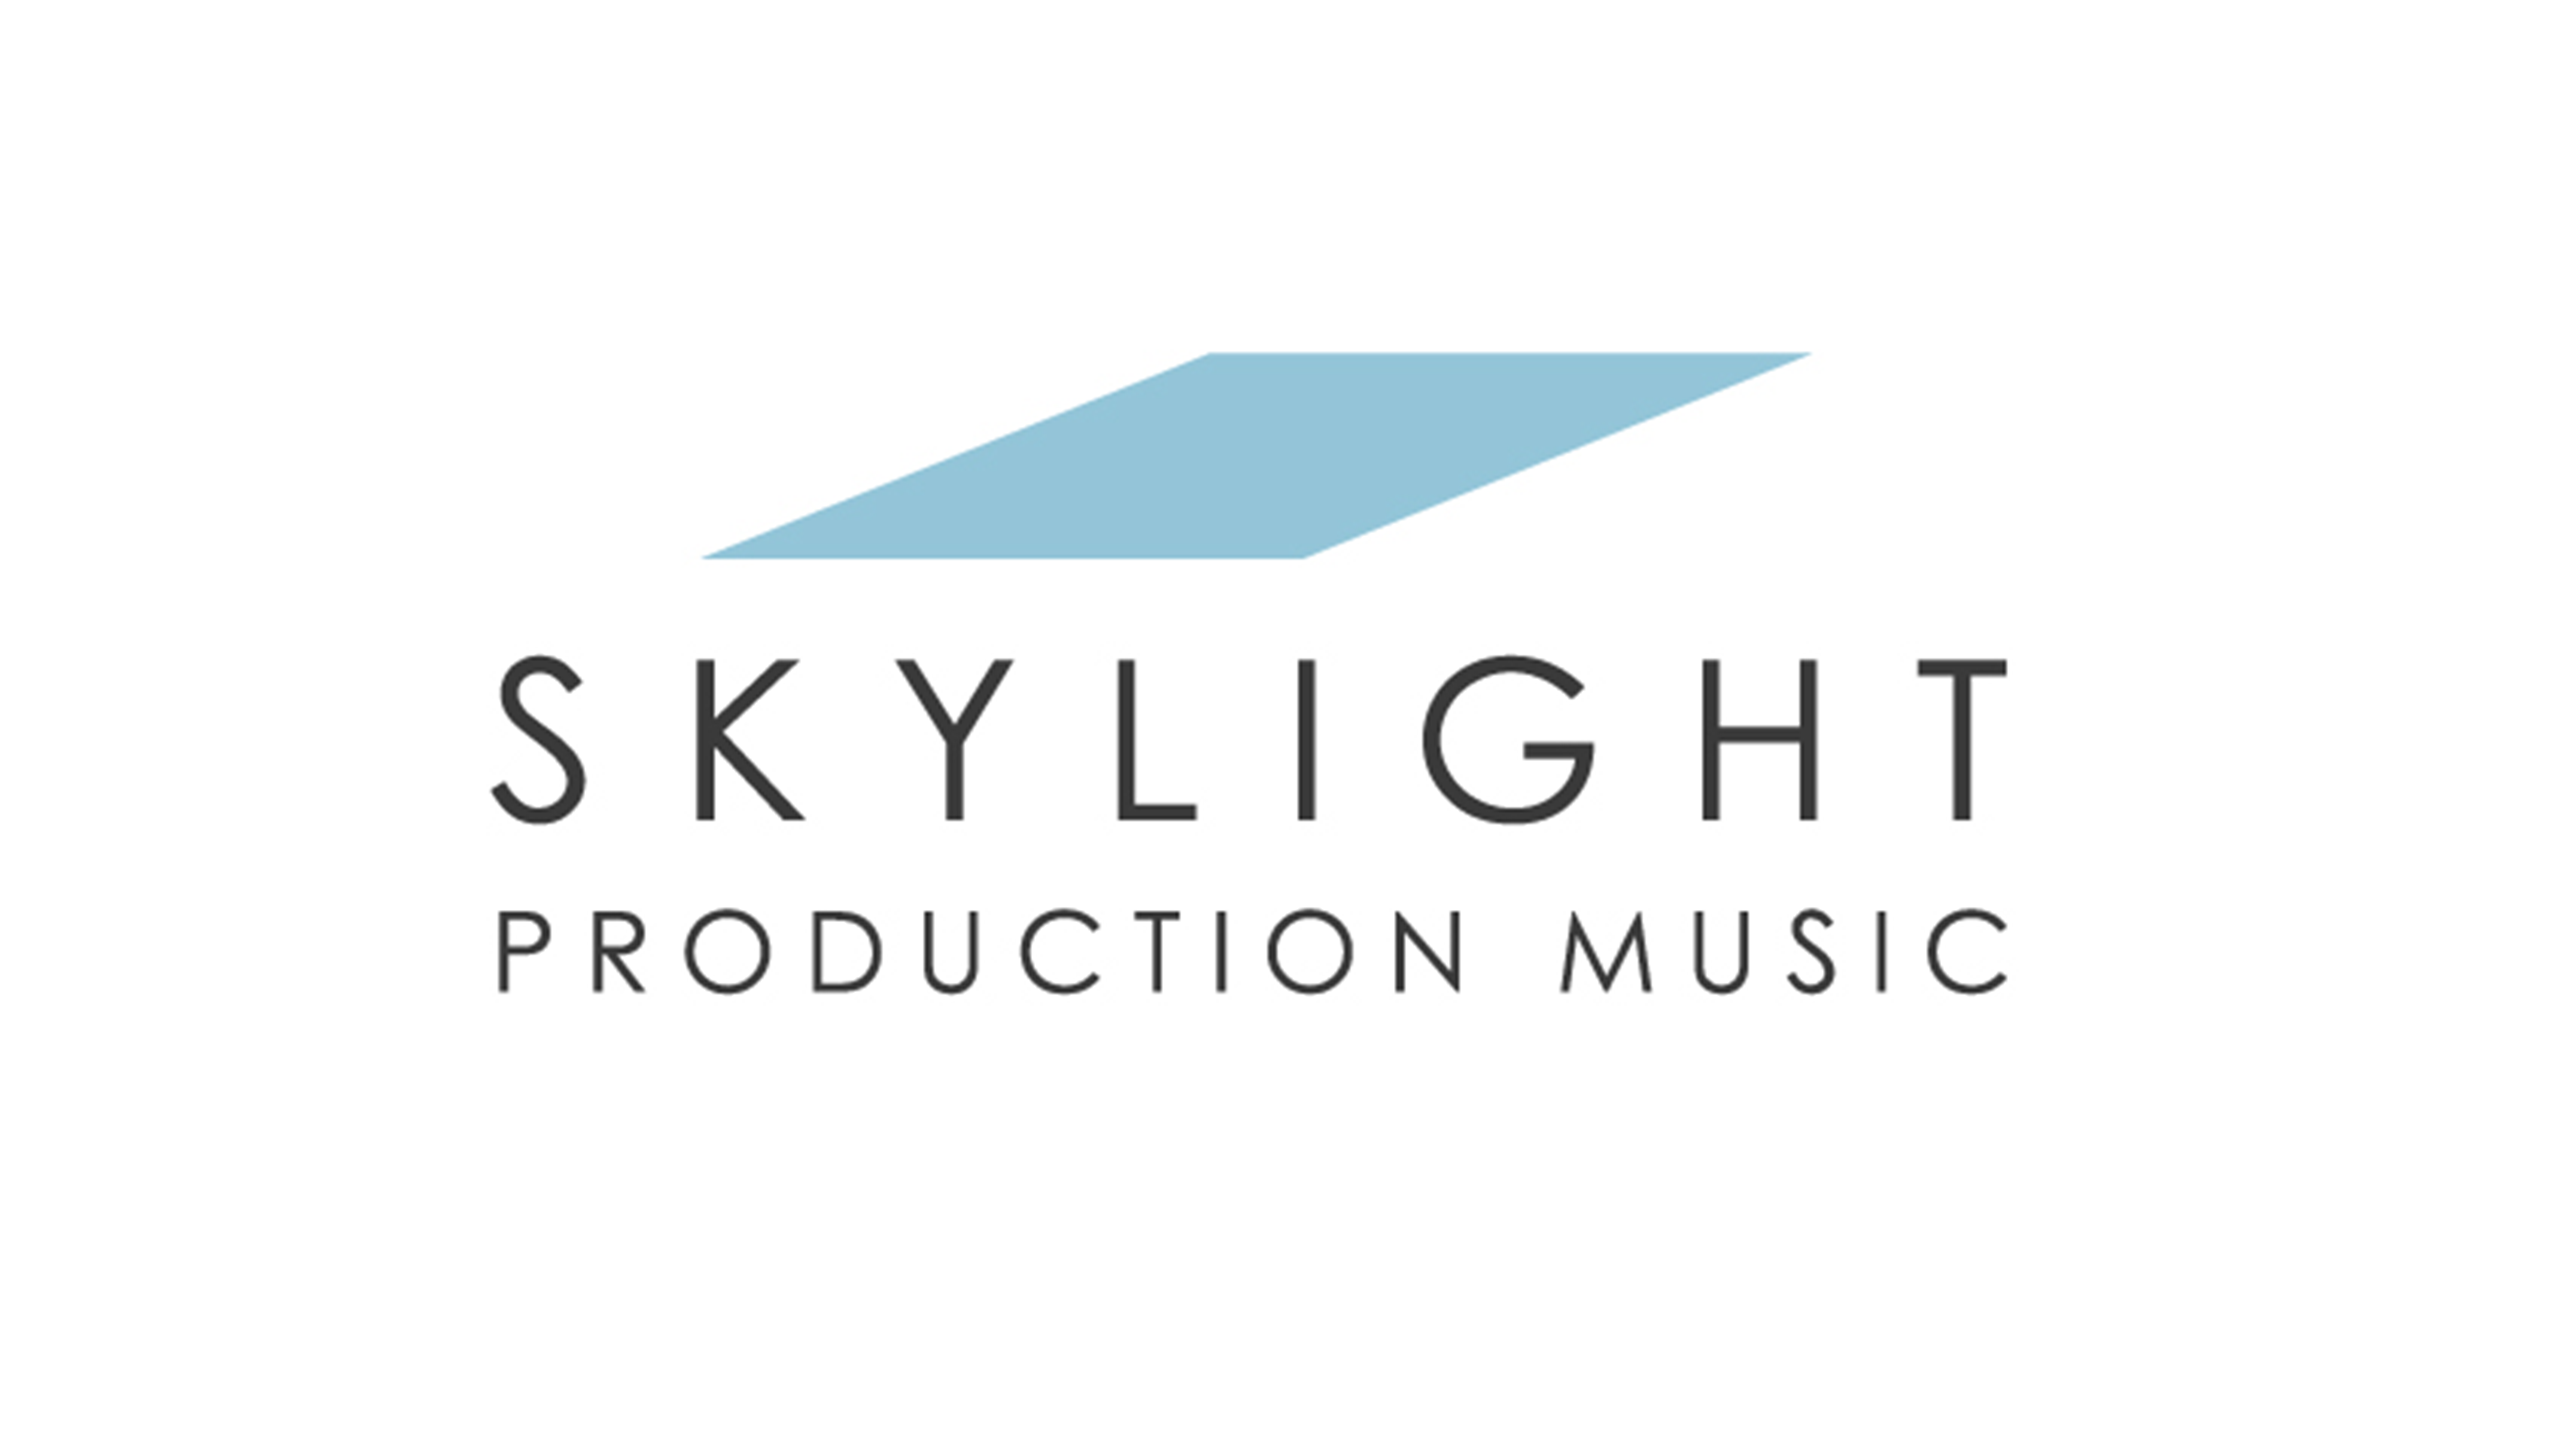 Skylight Production Music